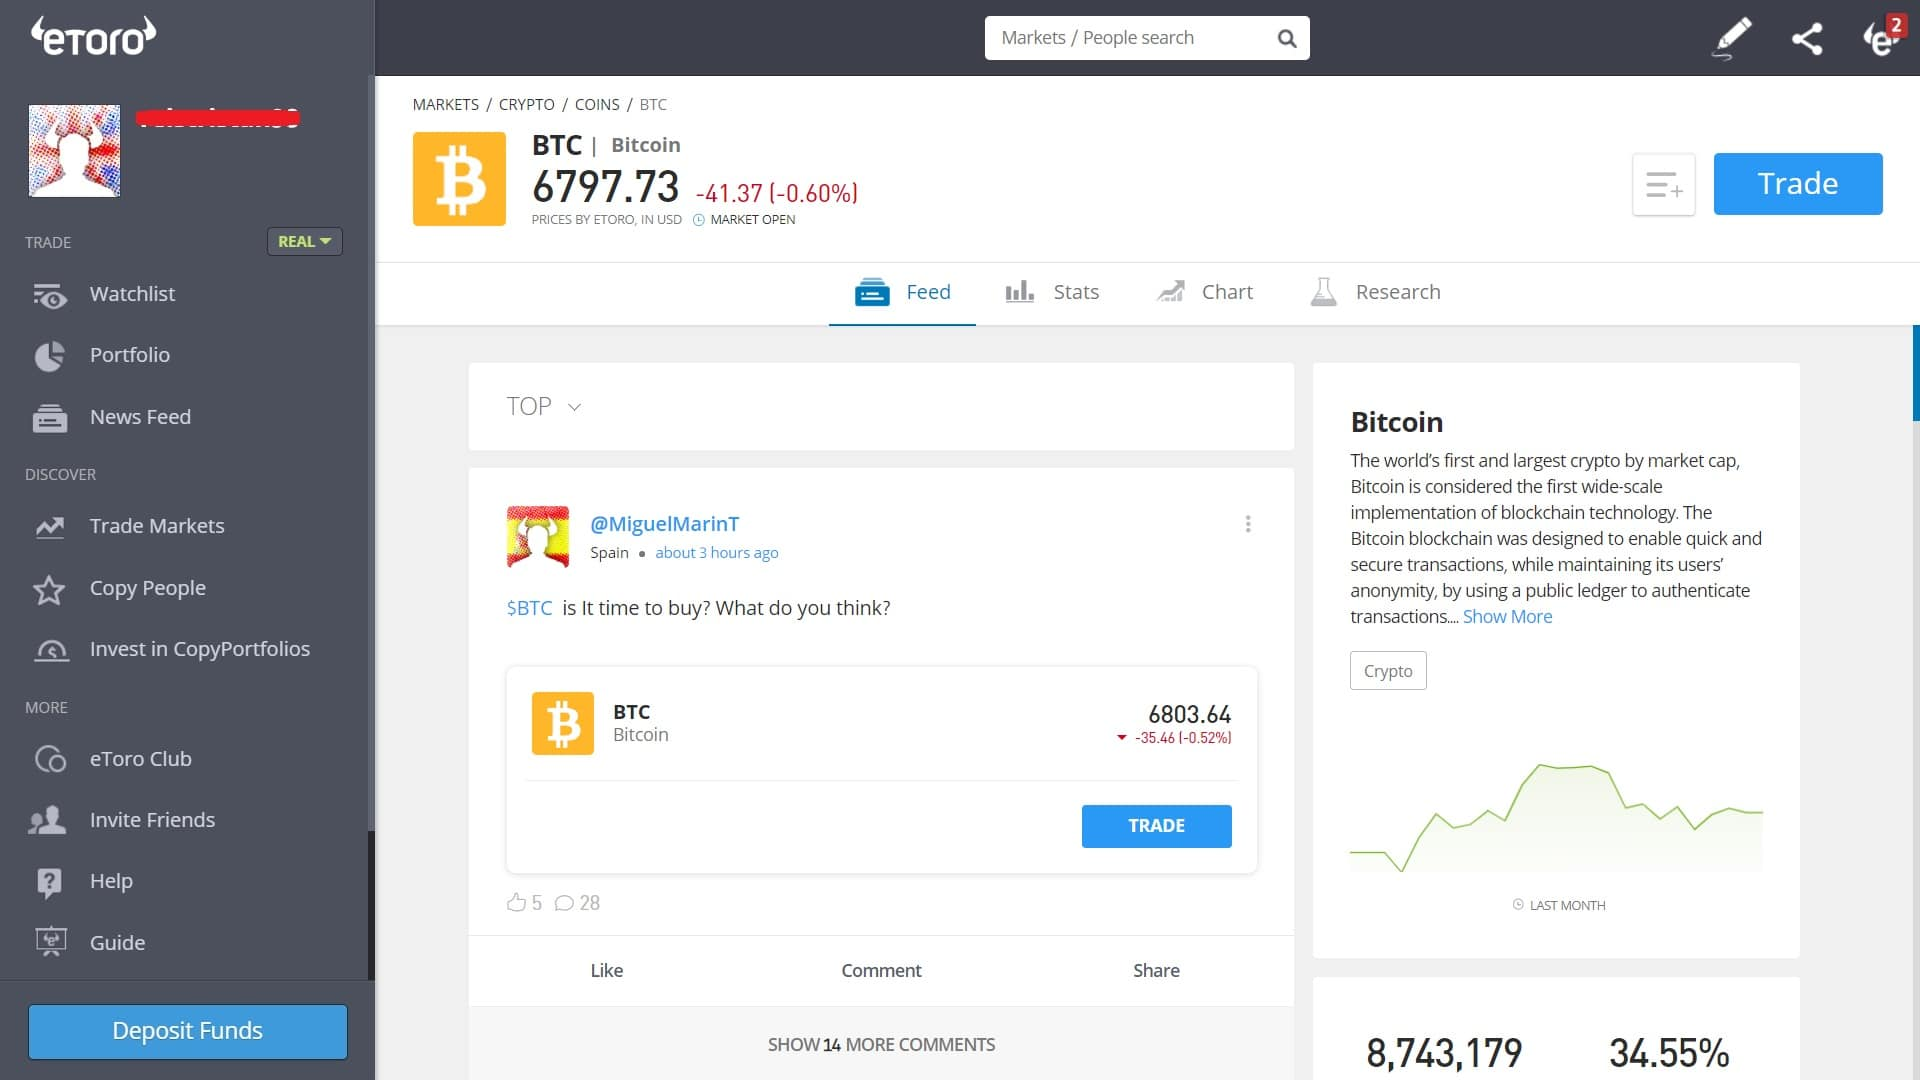 Bitcoin trading on eToro's platform